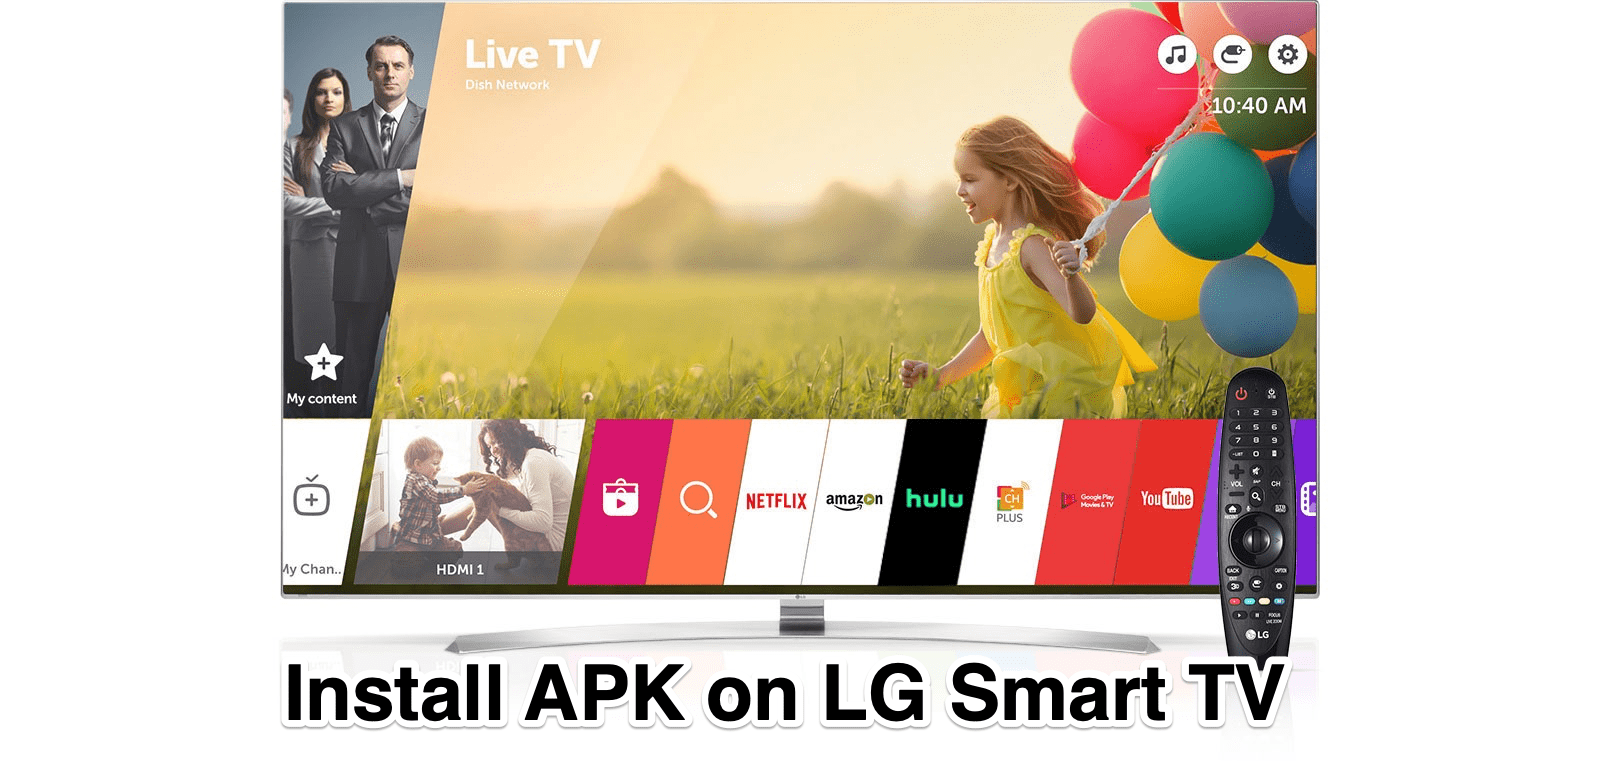 How to Download 8rd Party Apps on LG Smart TV?